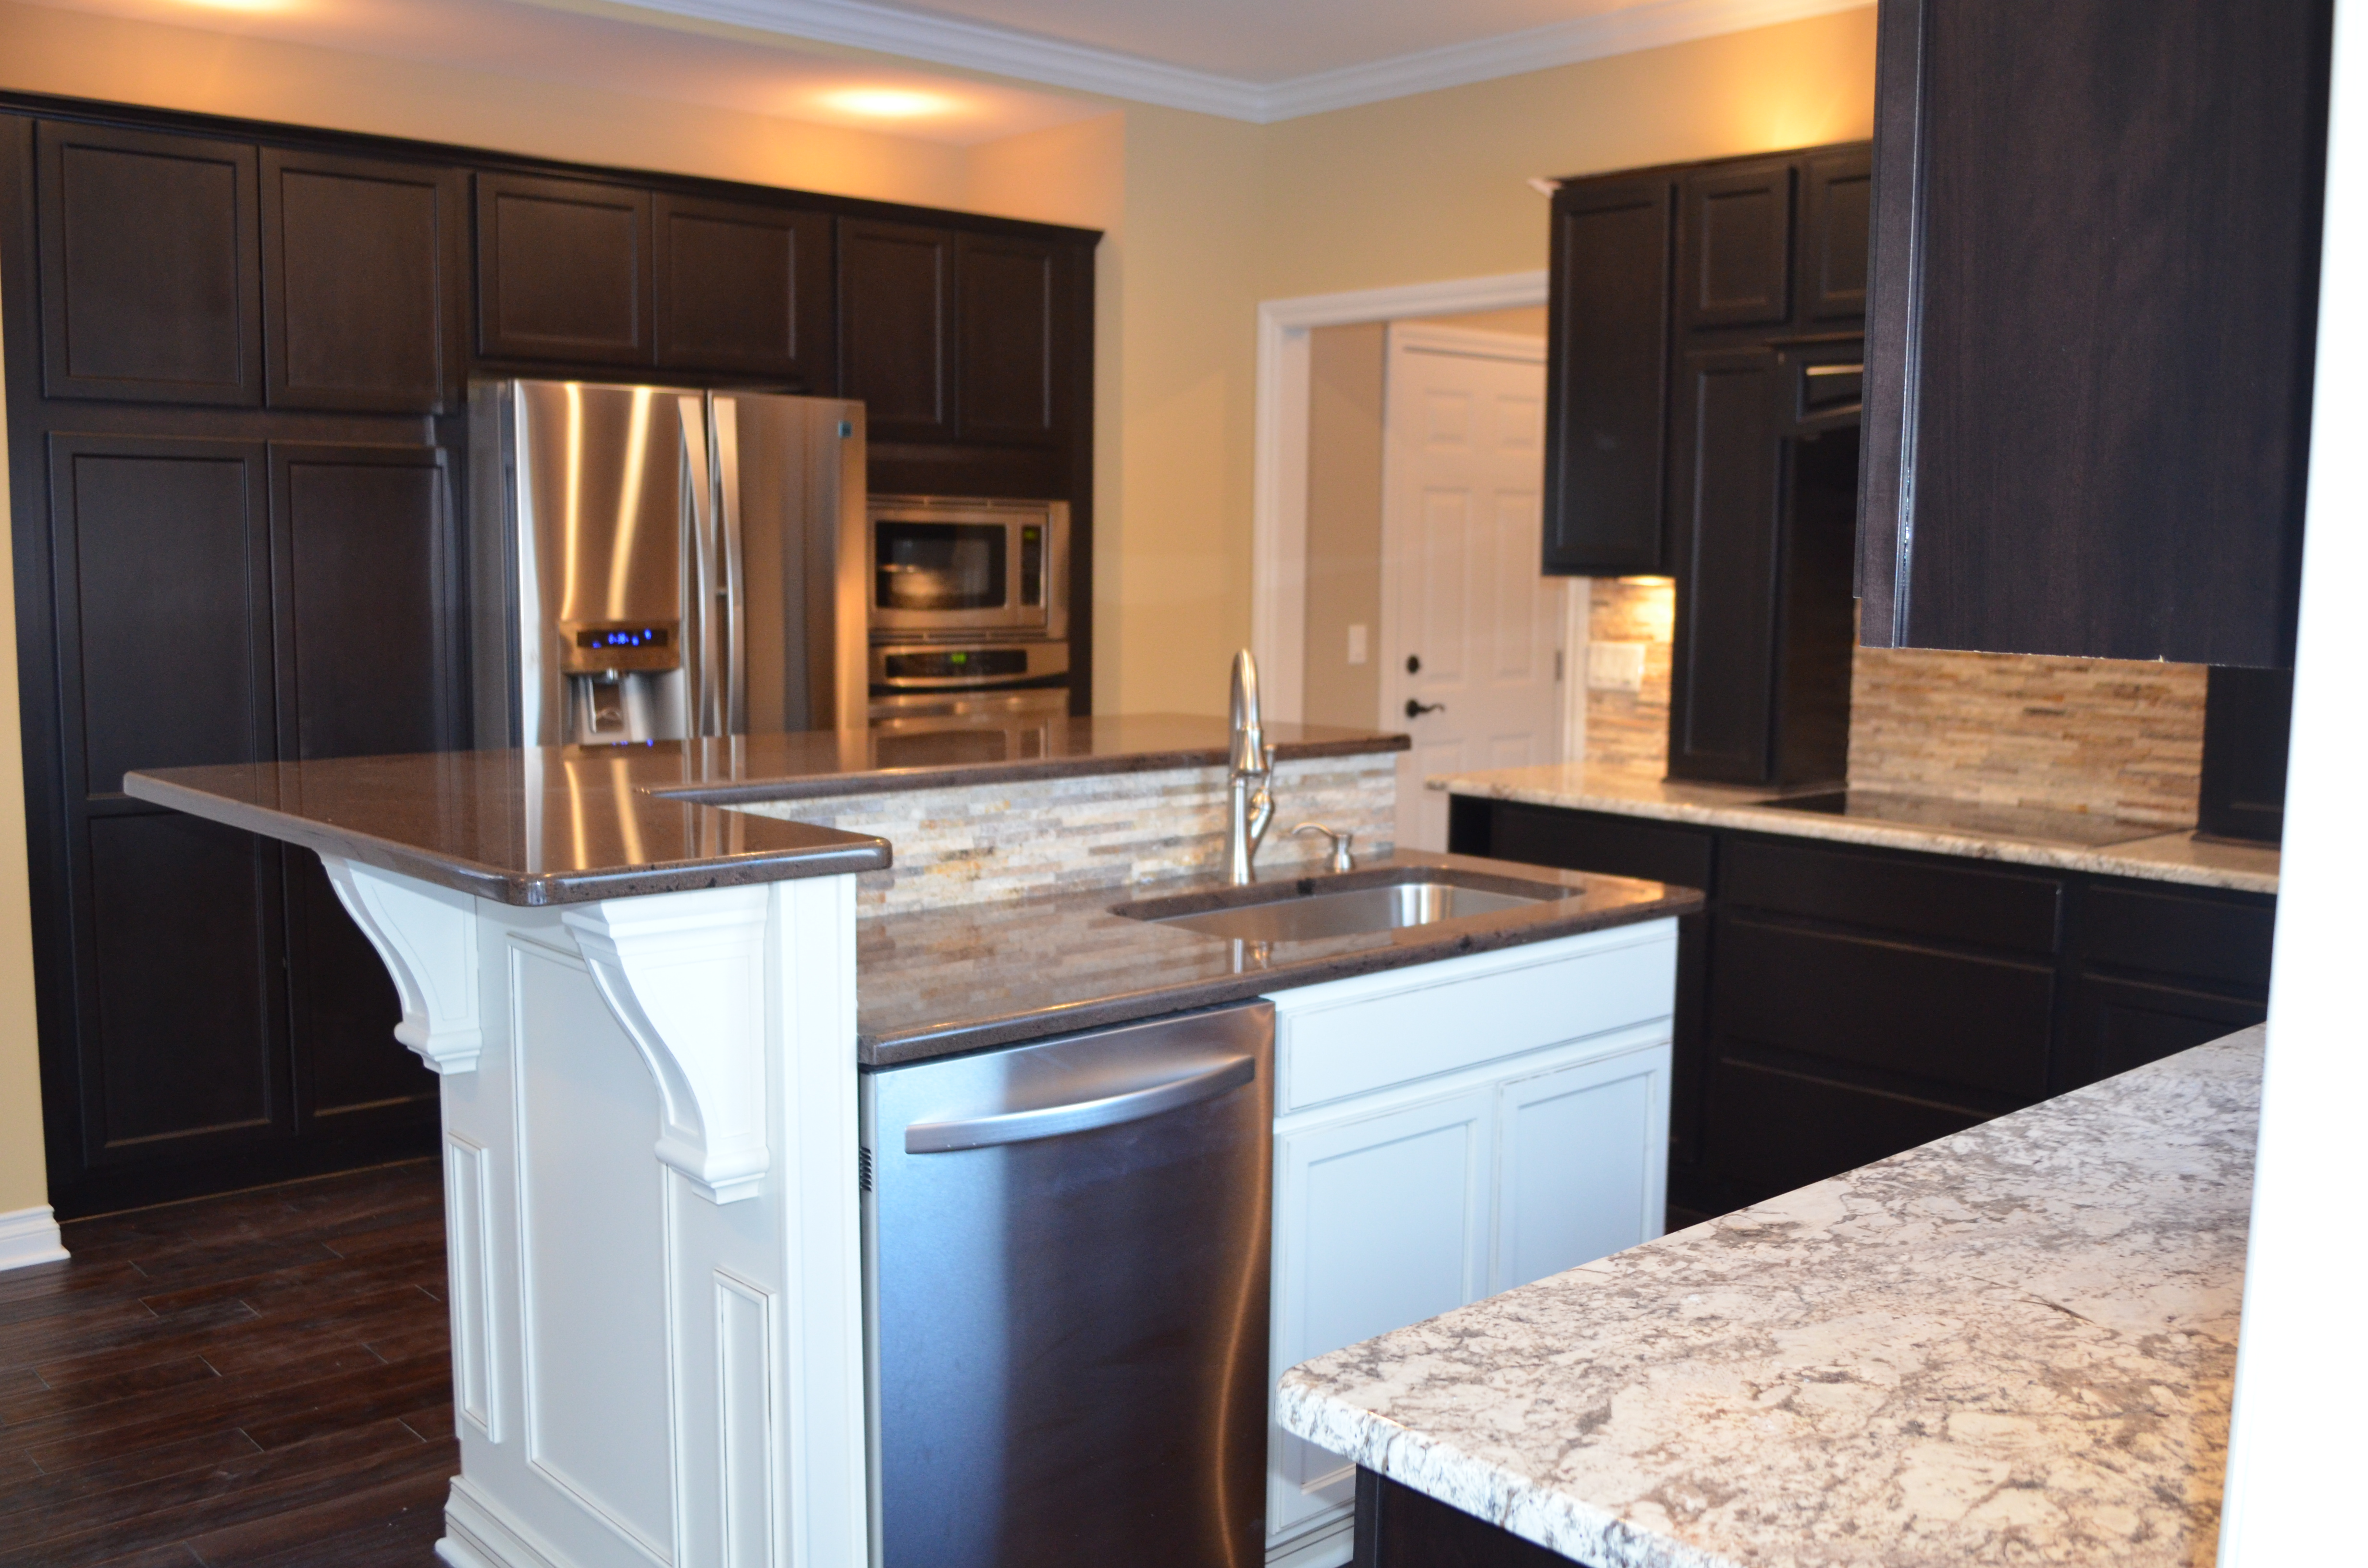 New Homes For Sale, Grand River KIs